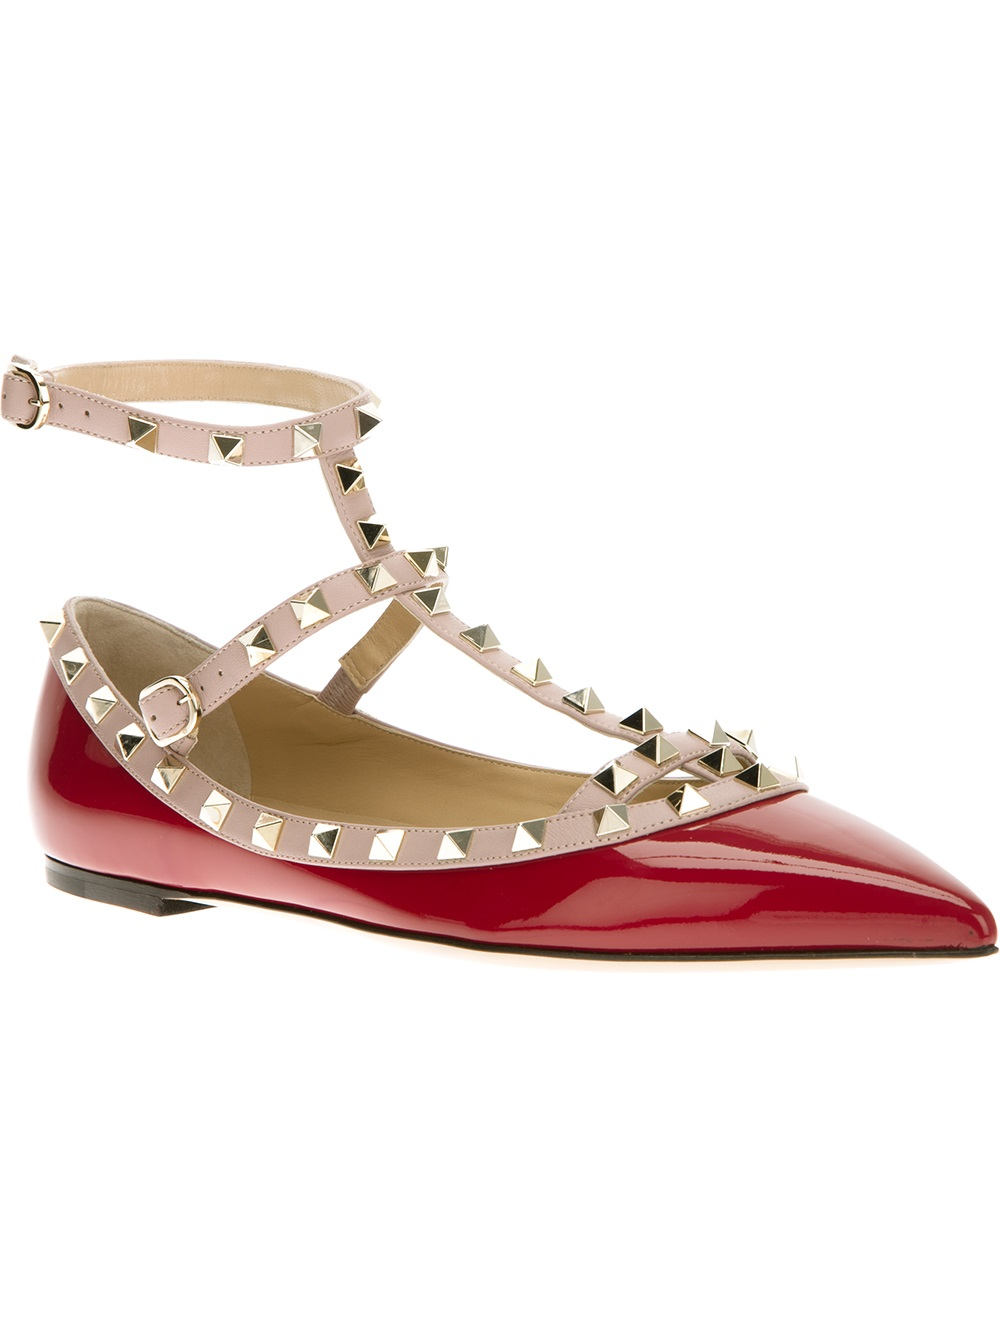 Valentino Studded Shoe in Red | Lyst